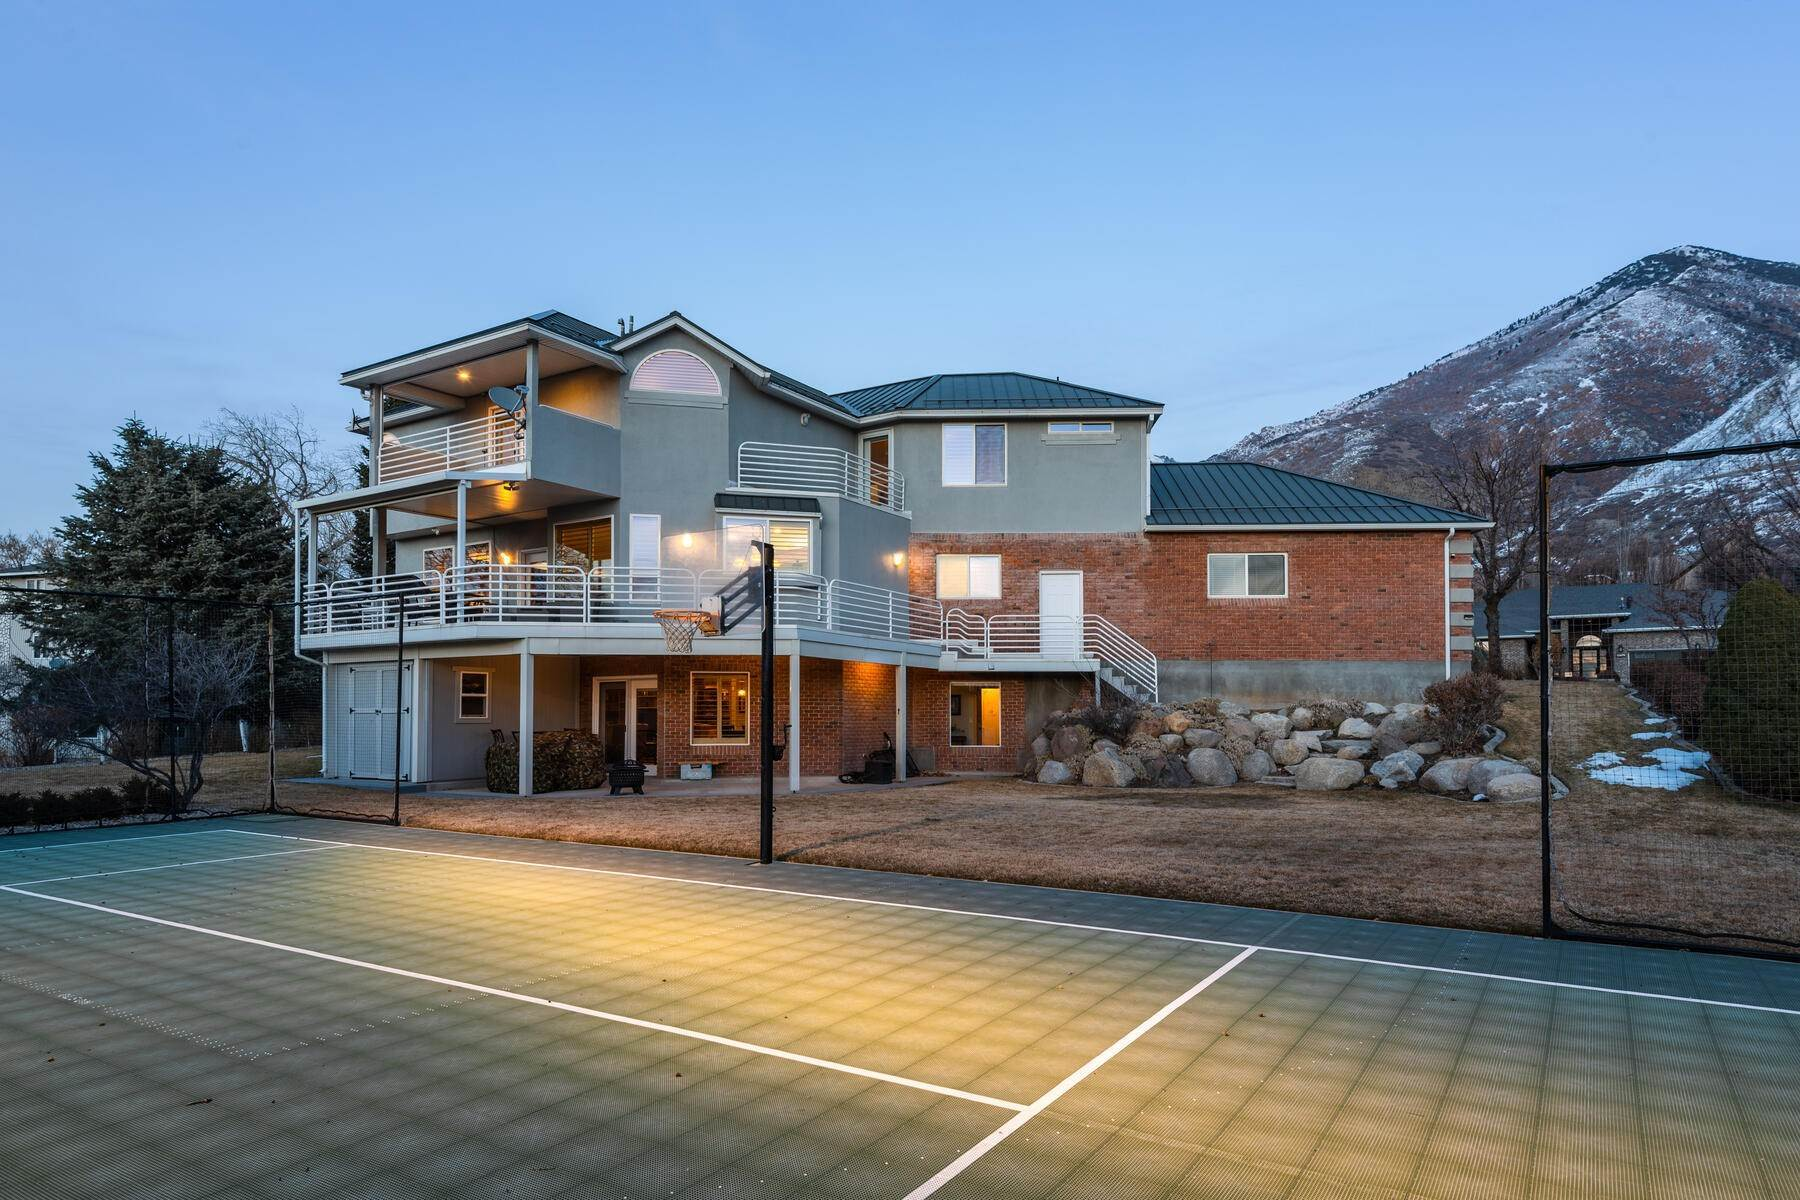 3. Single Family Homes for Sale at Beautiful 2-Story High up on Draper's East Bench 12464 S 1840 E Draper, Utah 84020 United States